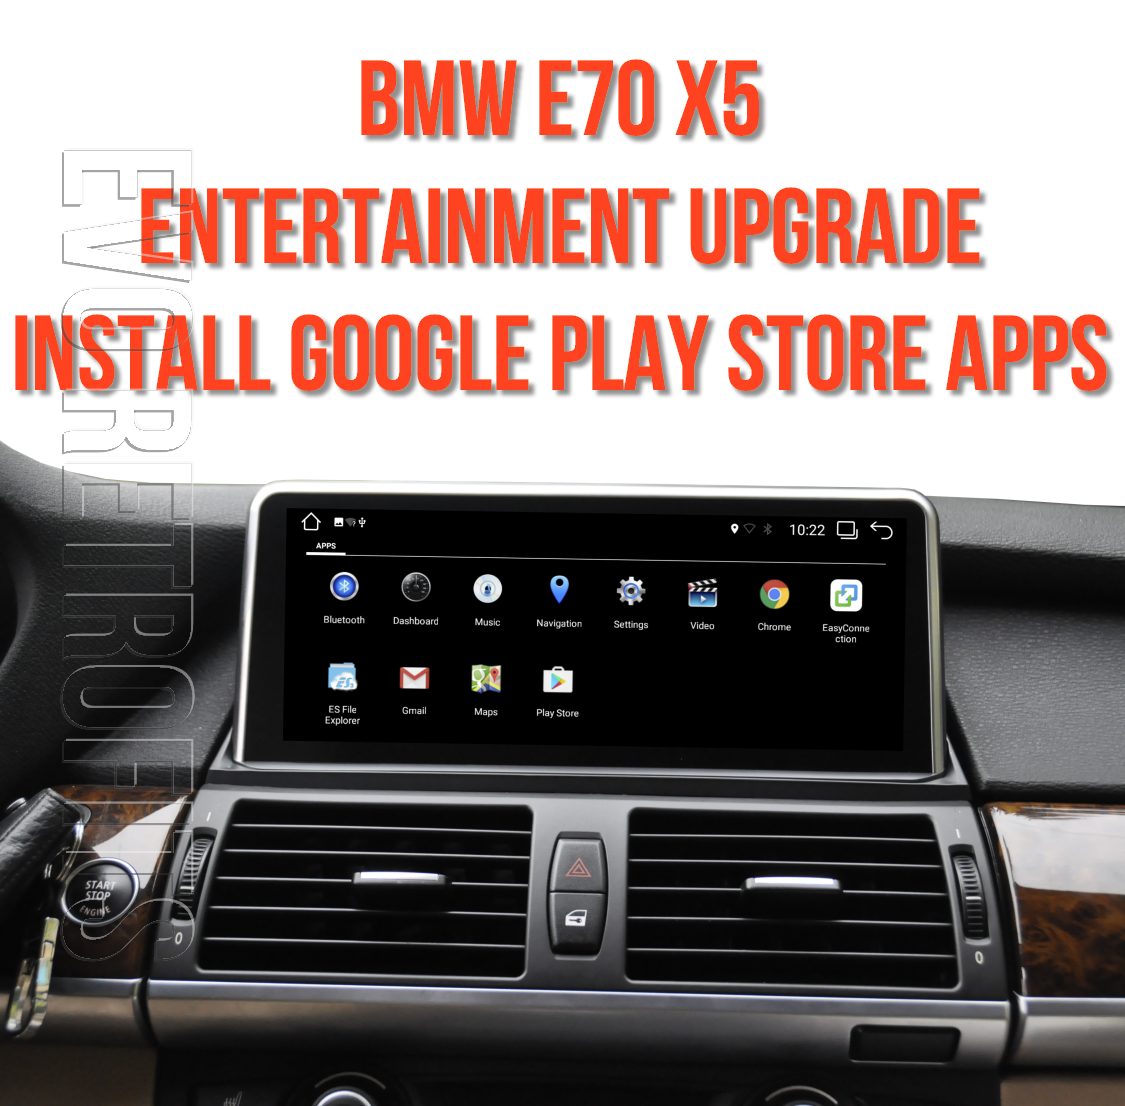 BMW X5 E70 (YEARS 2006-2013) FULL ENTERTAINMENT UPGRADE KIT BMW X5  NAVIGATION UPGRADE APPLE CARPLAY ANDROID AUTO